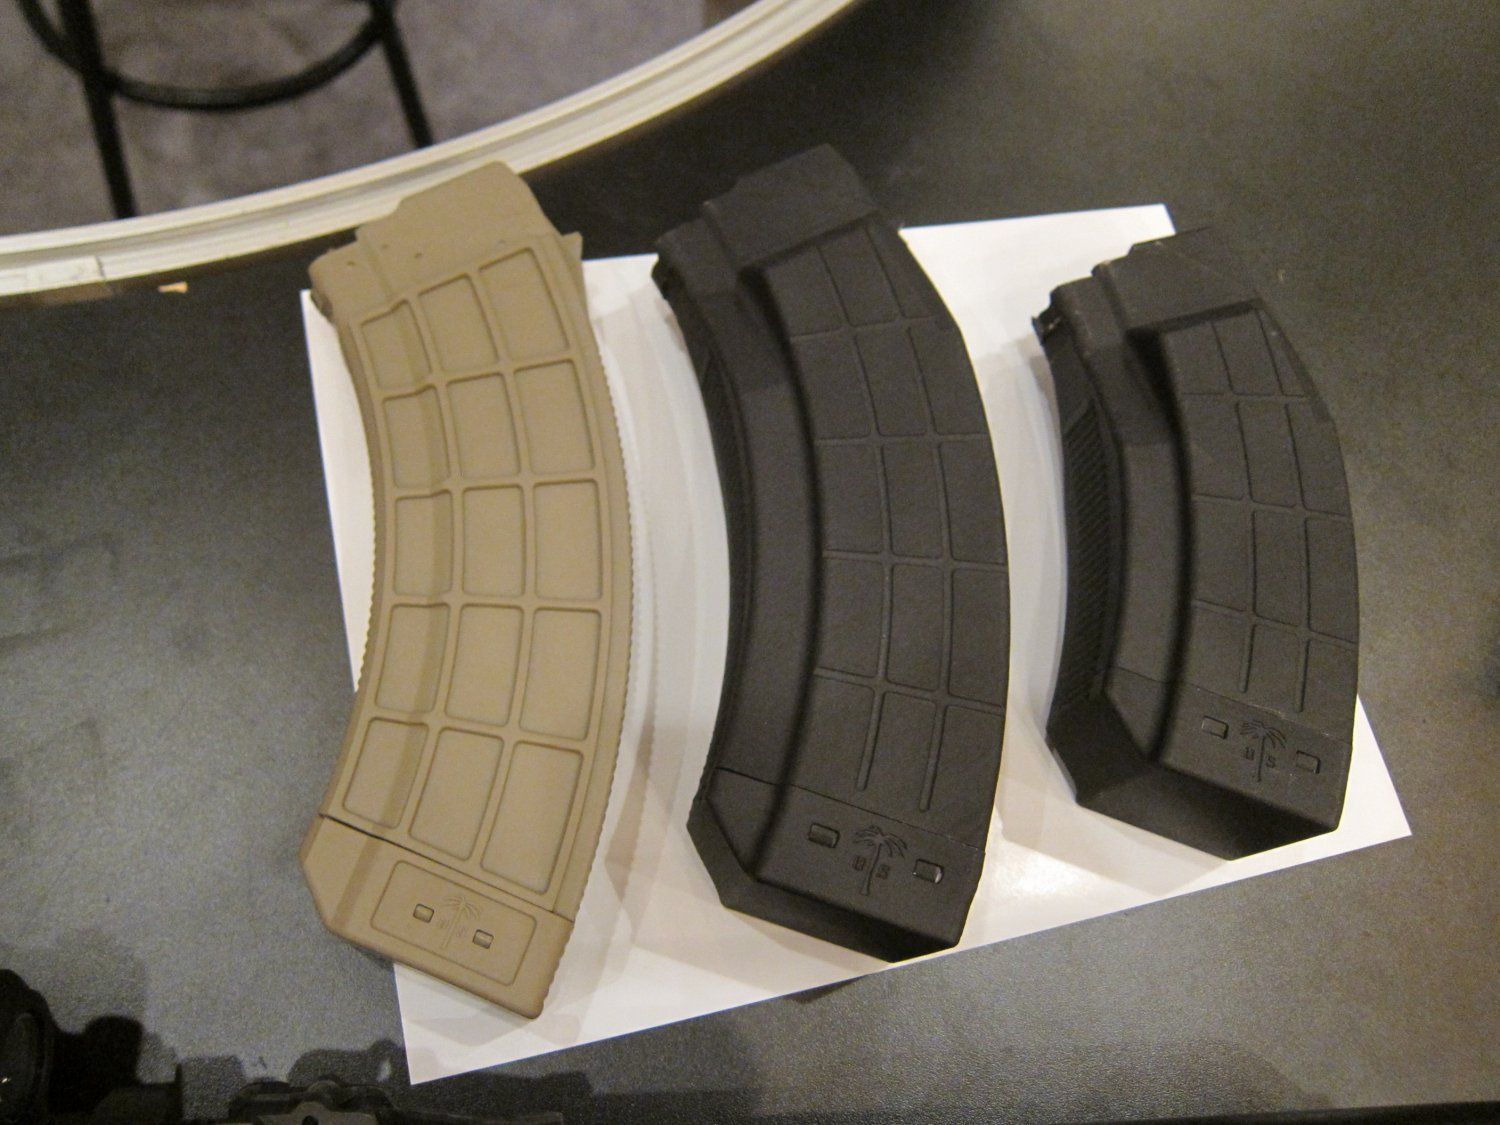 US PALM  Qaud Stack 4x2 45 Round and 30 Round AK Mags AK 47 AKM Rifle Magazines TangoDown SHOT Show 2012 DefenseReview.com DR 3 US PALM 45 Round and 30 Round Quad Stack (4x2 config) 7.62x39mm Russian Caliber Polymer AK Mags (Rifle Magazines) at SHOT Show 2012: The Kalashnikov AK 47/AKM Rifle Gets a Big Boost in Immediate Ammo Capacity/Tactical Firepower! (Video!)